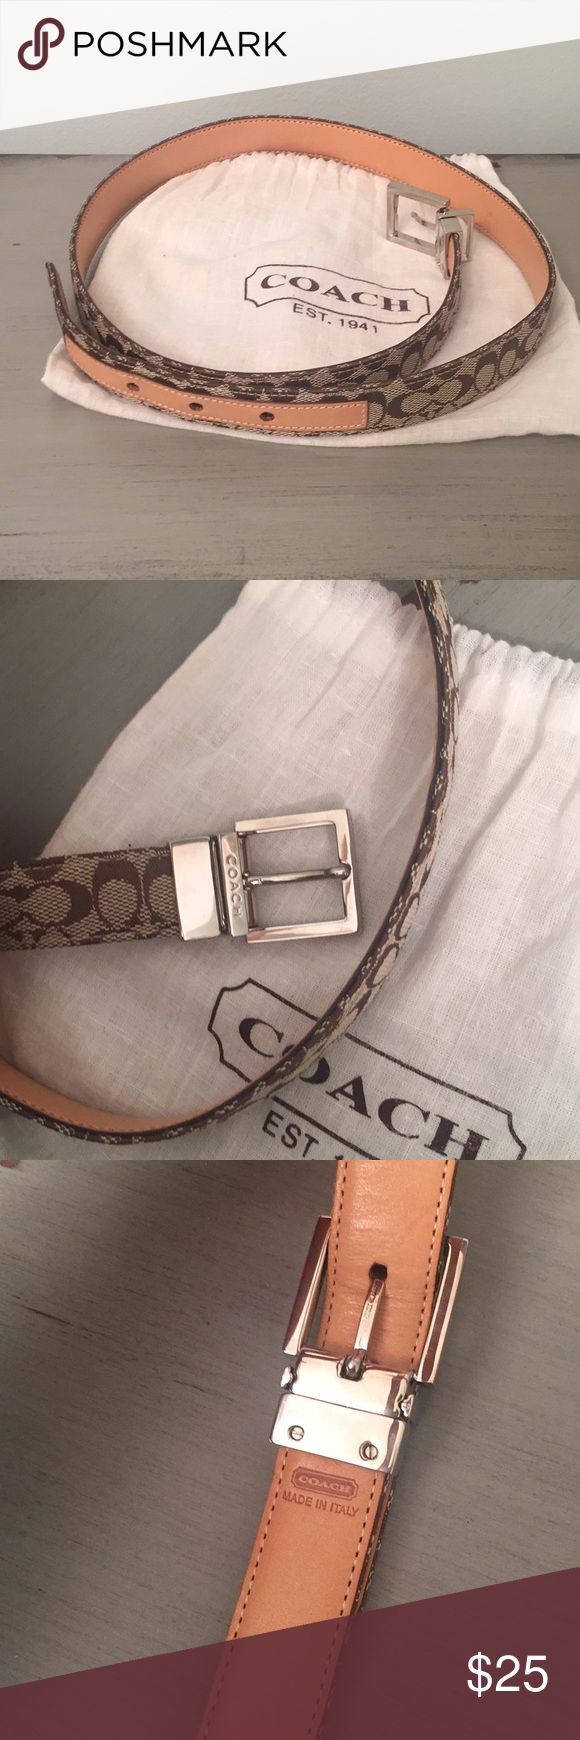 Coach belt ~made in Italy~ NEVER worn, like new. Received as a gift but too small for me.  Three holes option for sizing. Dust bag included. Beautiful hardware and print. Refer to photos.  36 inches long from end to end laid flat. 31 inches to smallest fit, 32 inches middle hole, 33 inches to most loose fit. 35 inches long not including buckle hardware. 1 inch width.   Please feel free to make a reasonable offer 😊 Coach Accessories Belts